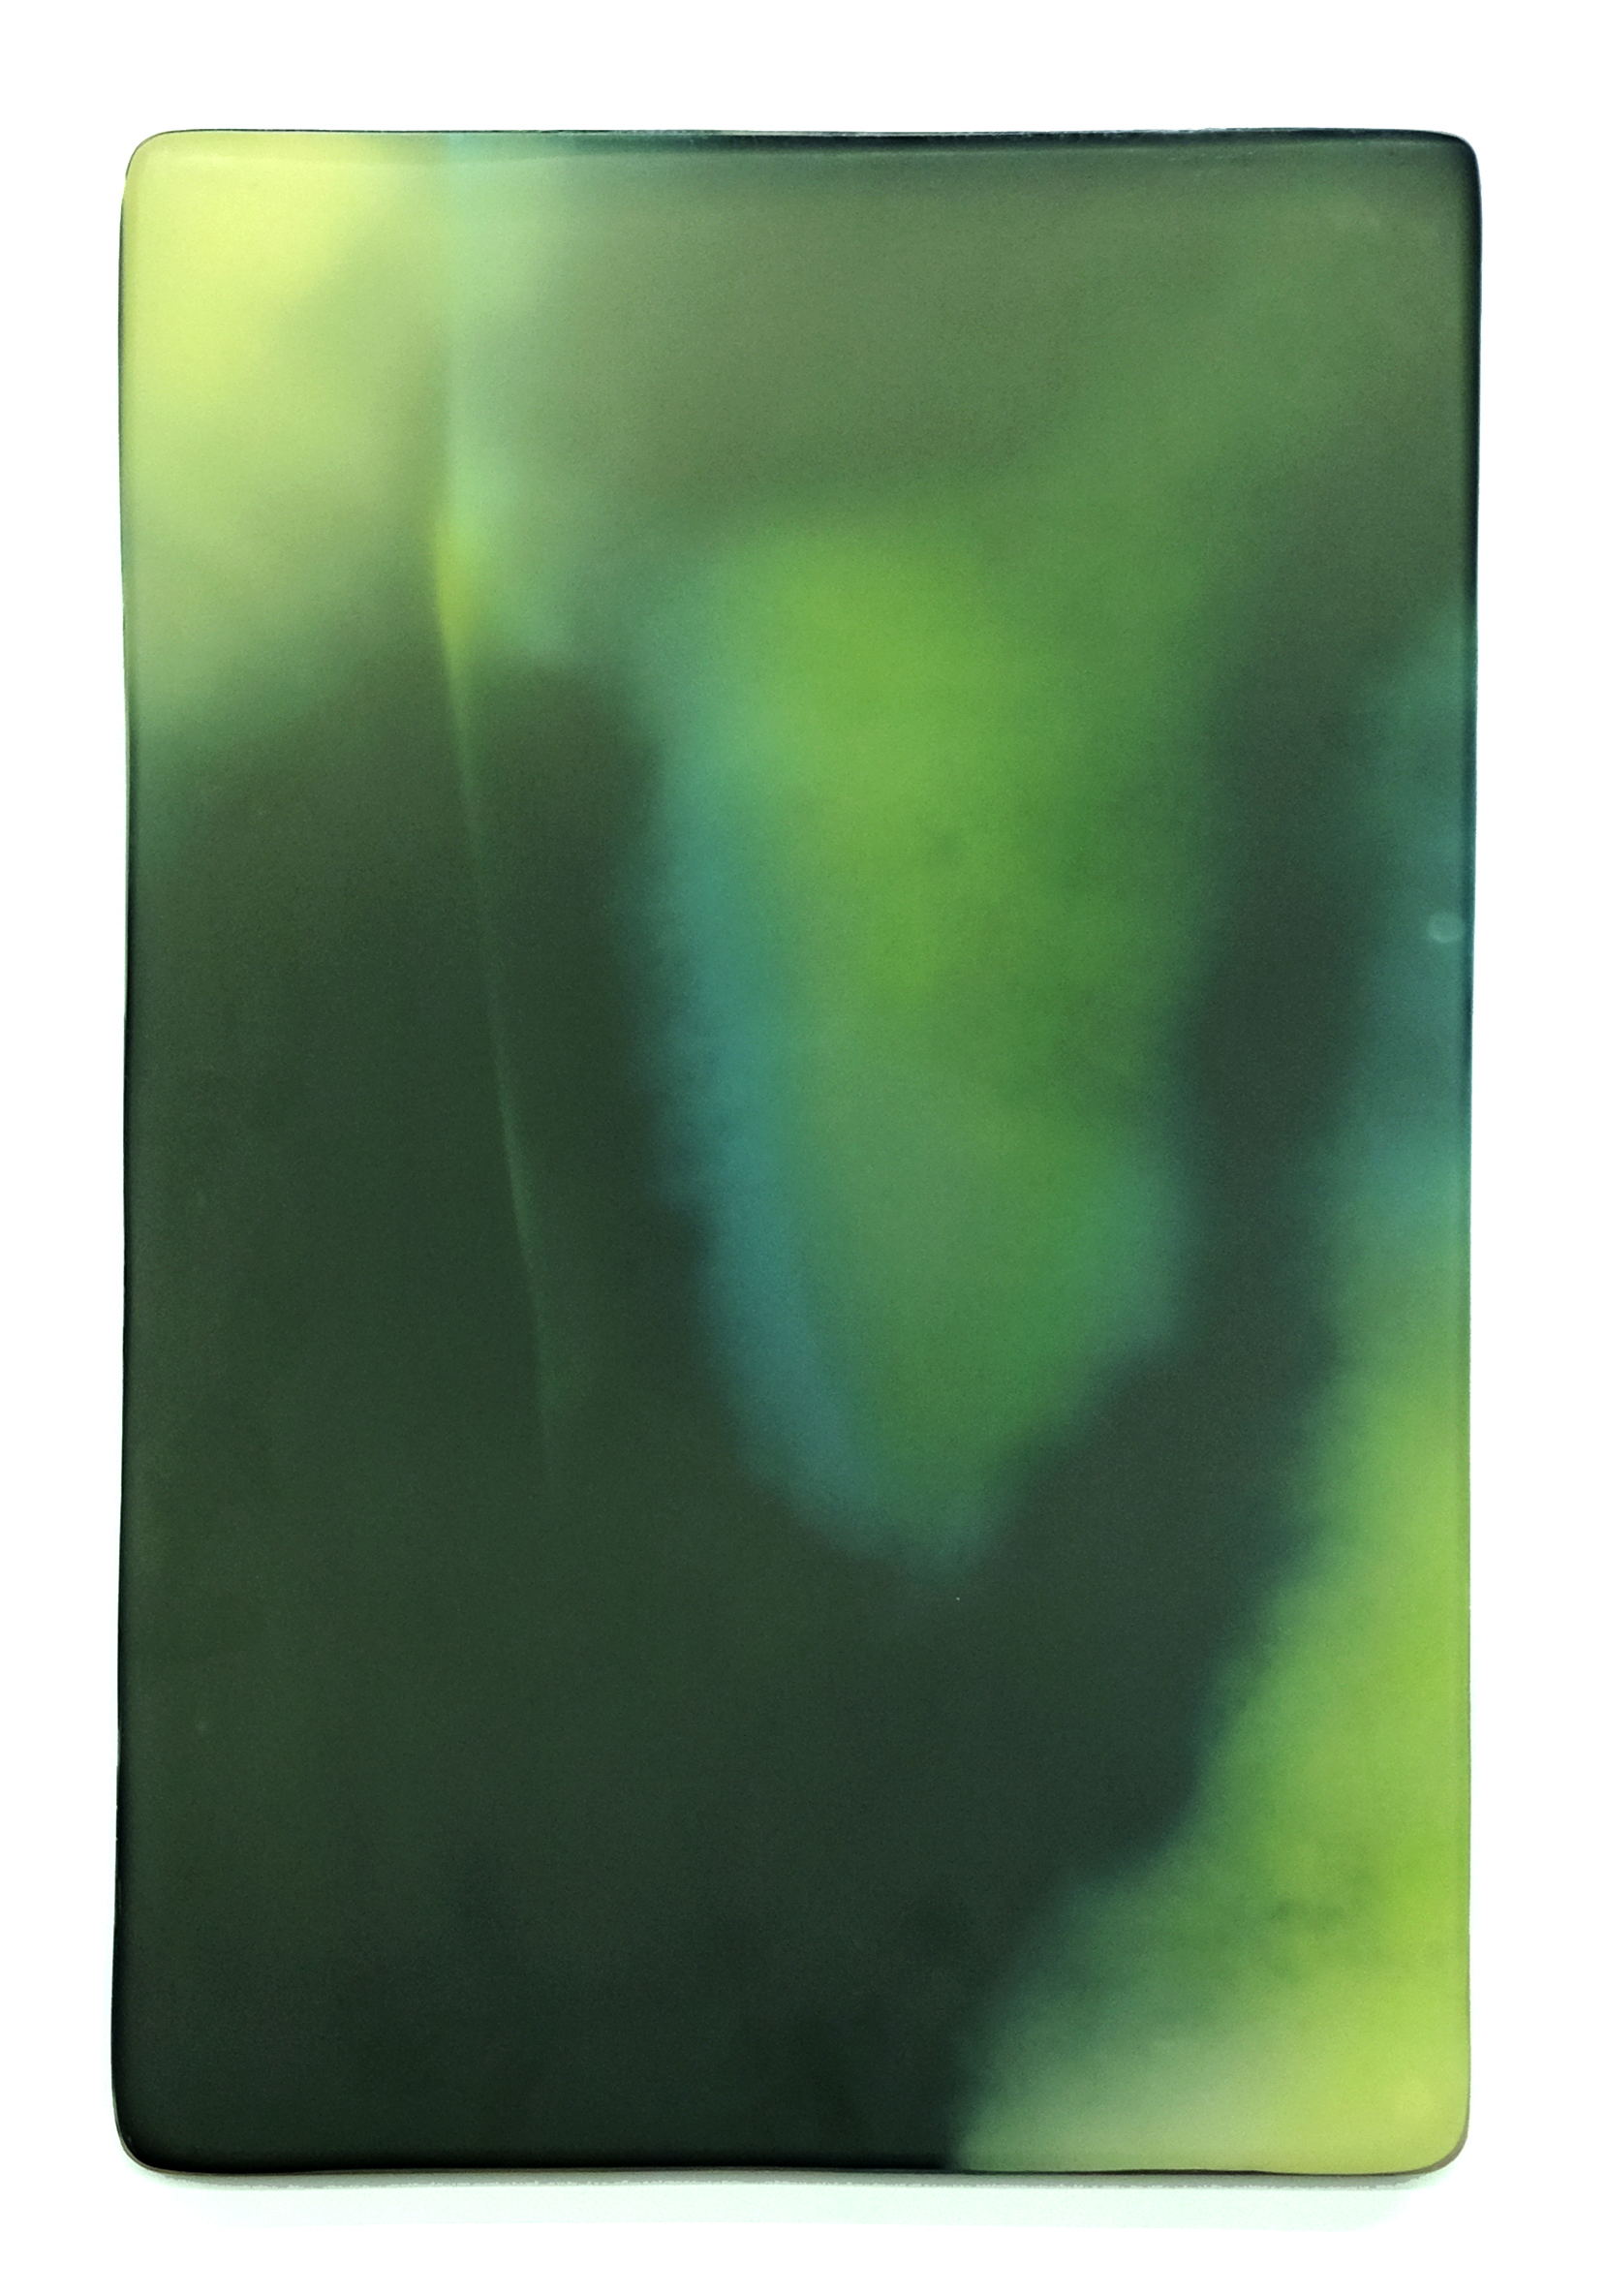 "MALAGINNIGHT   Phosphorescent pigment, high density foam, acrylic paint, UV  protected epoxy, vanish  20"" x 30"" 2015"